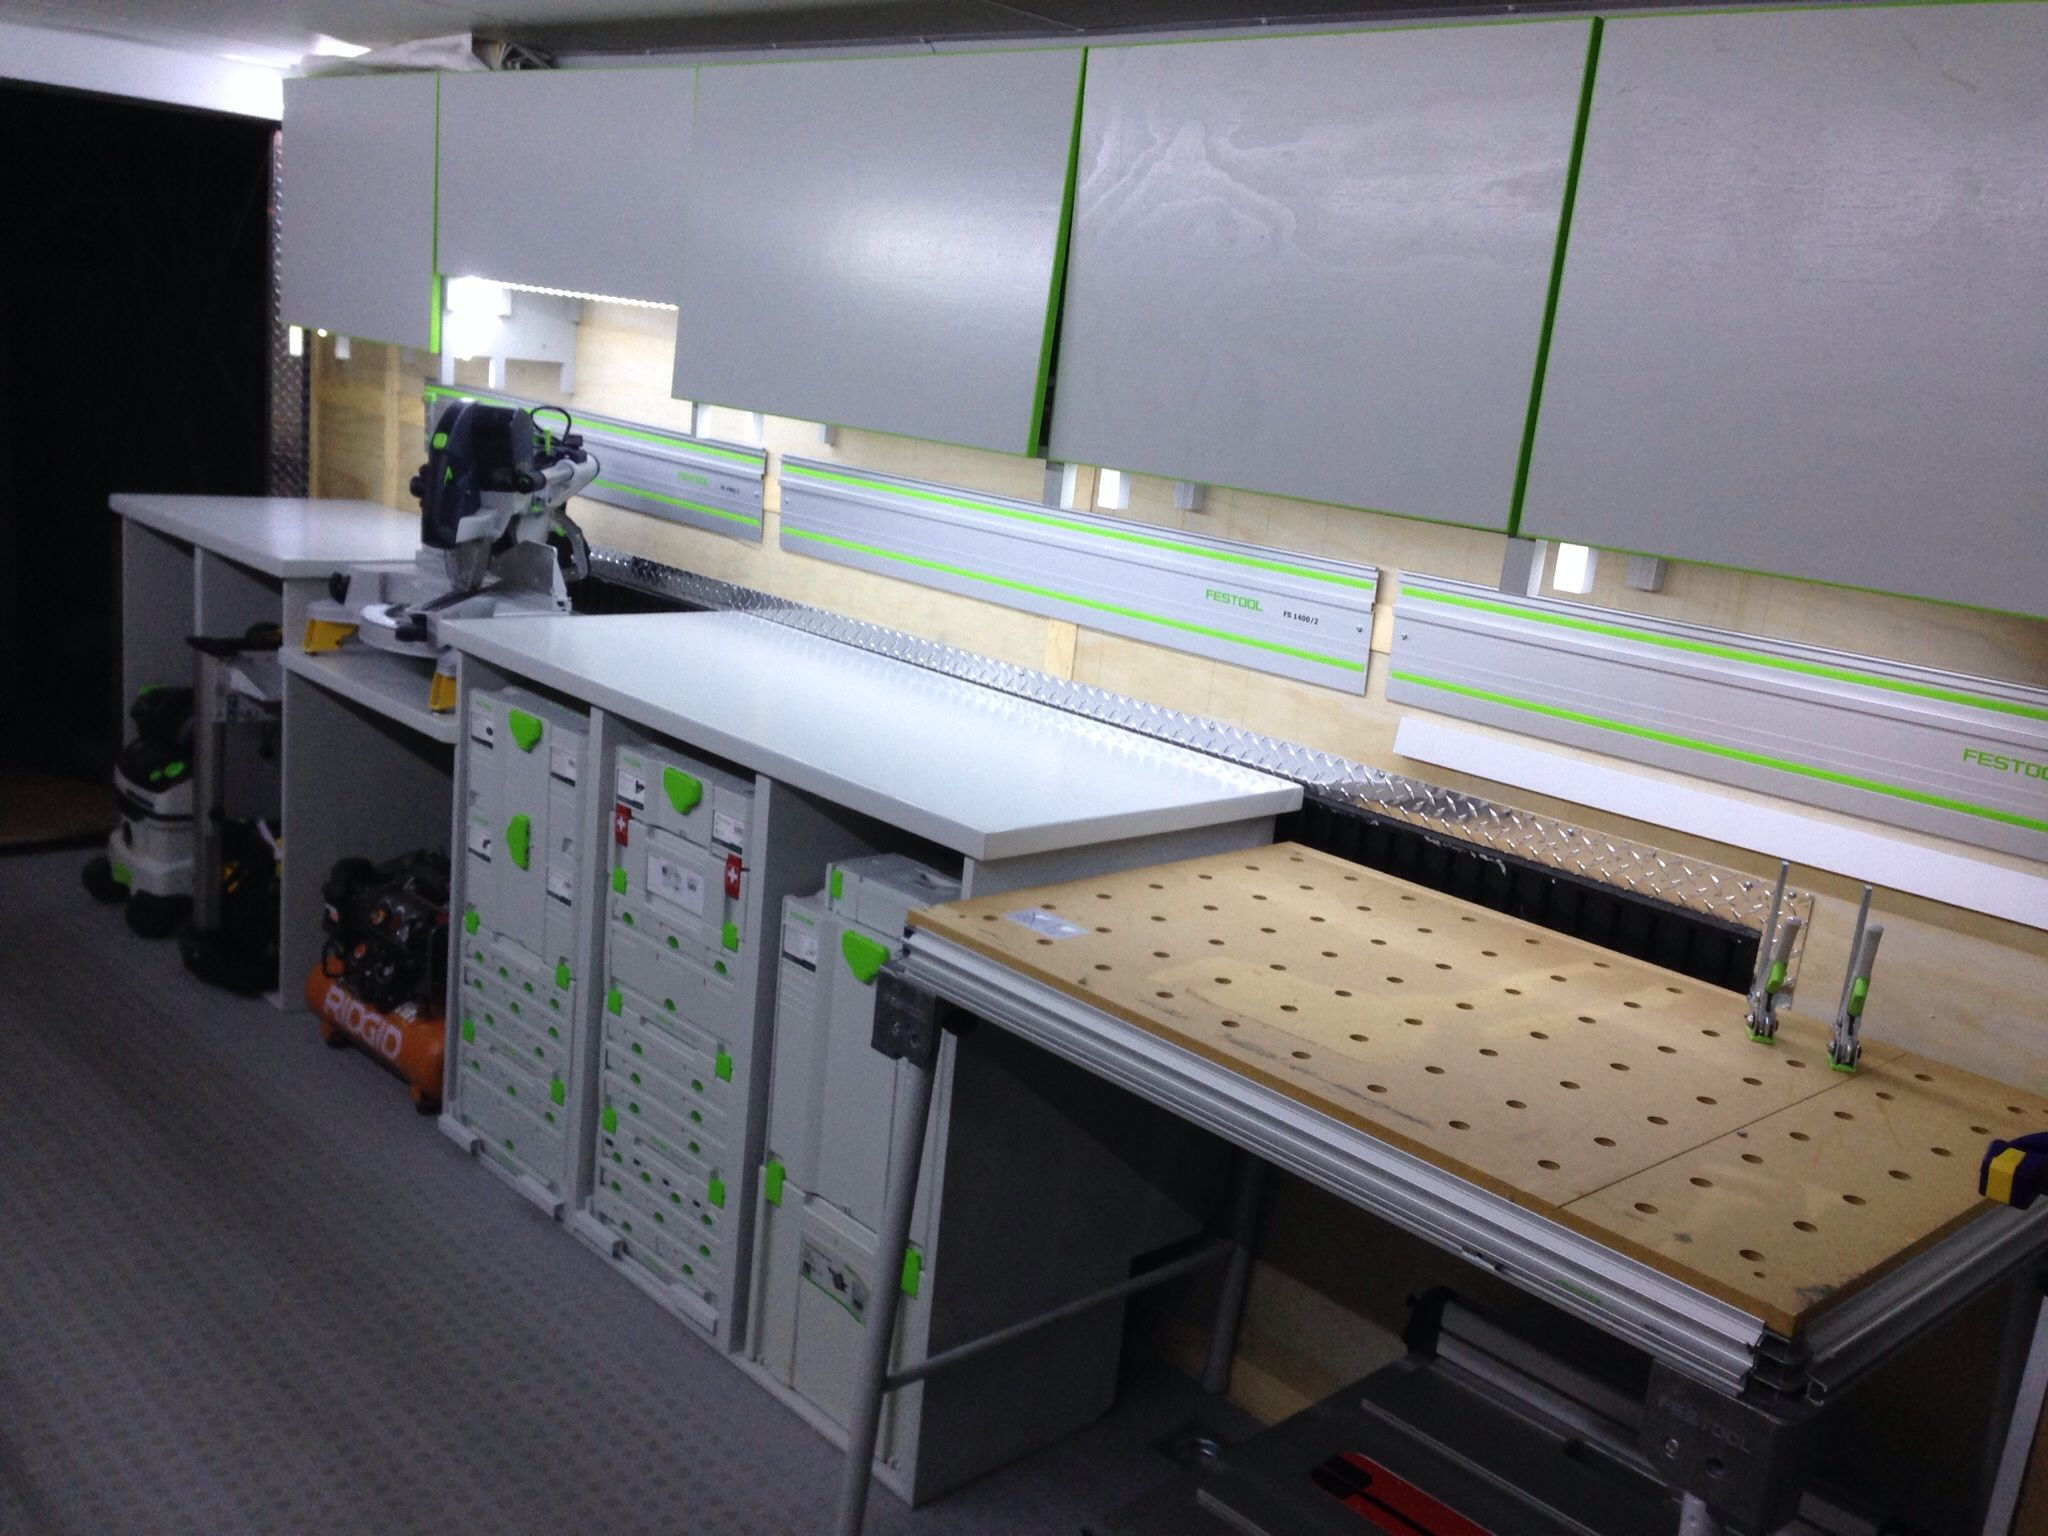 Festool Tools Make All The Difference